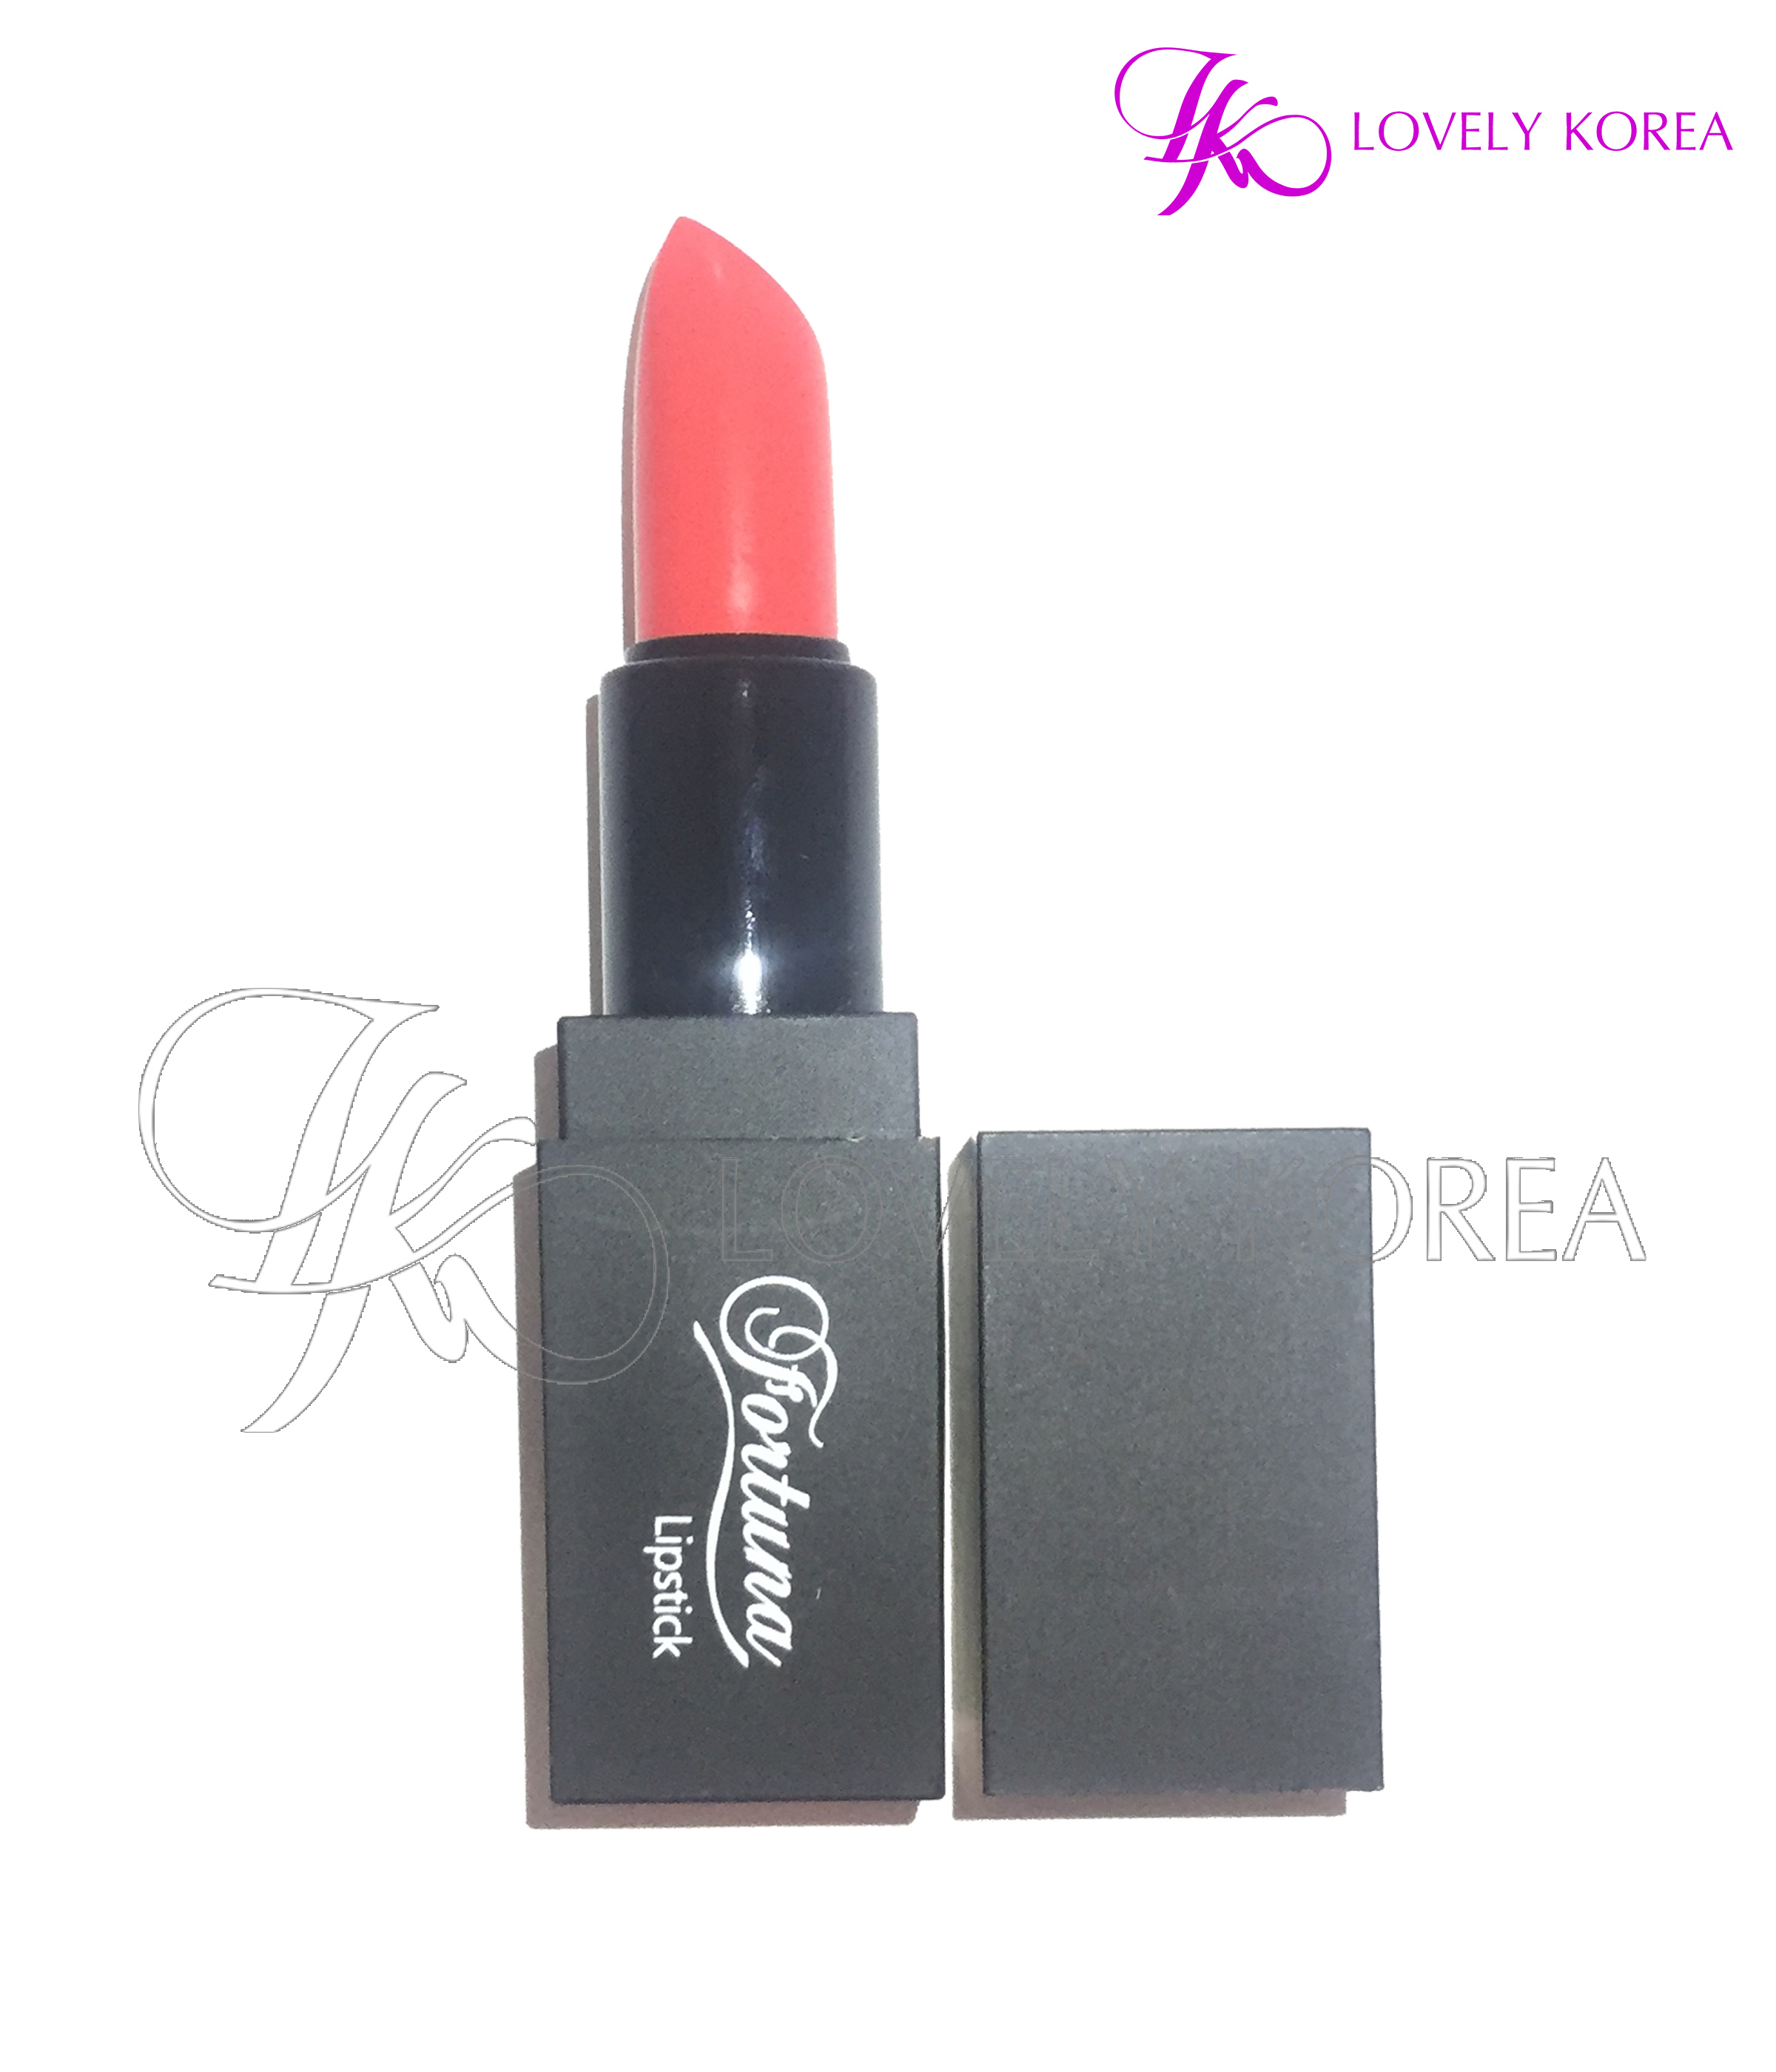 Son siêu lì Fortuna Lipstick (F77 - Deep Orange)